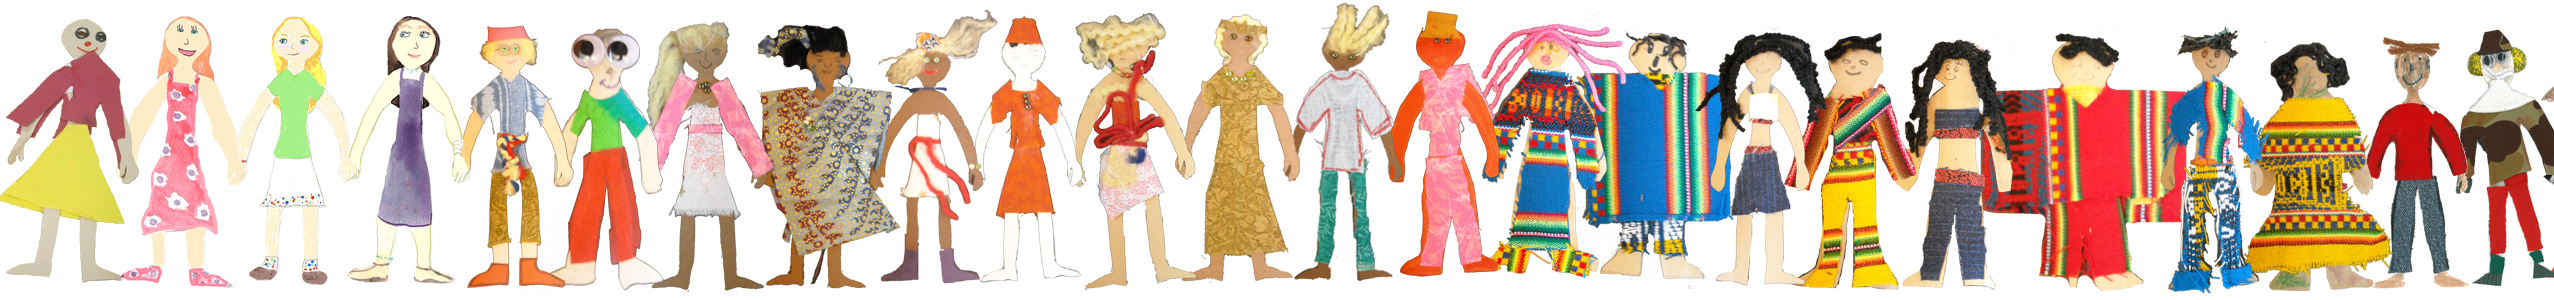 Hands clipart self. To png transparent images